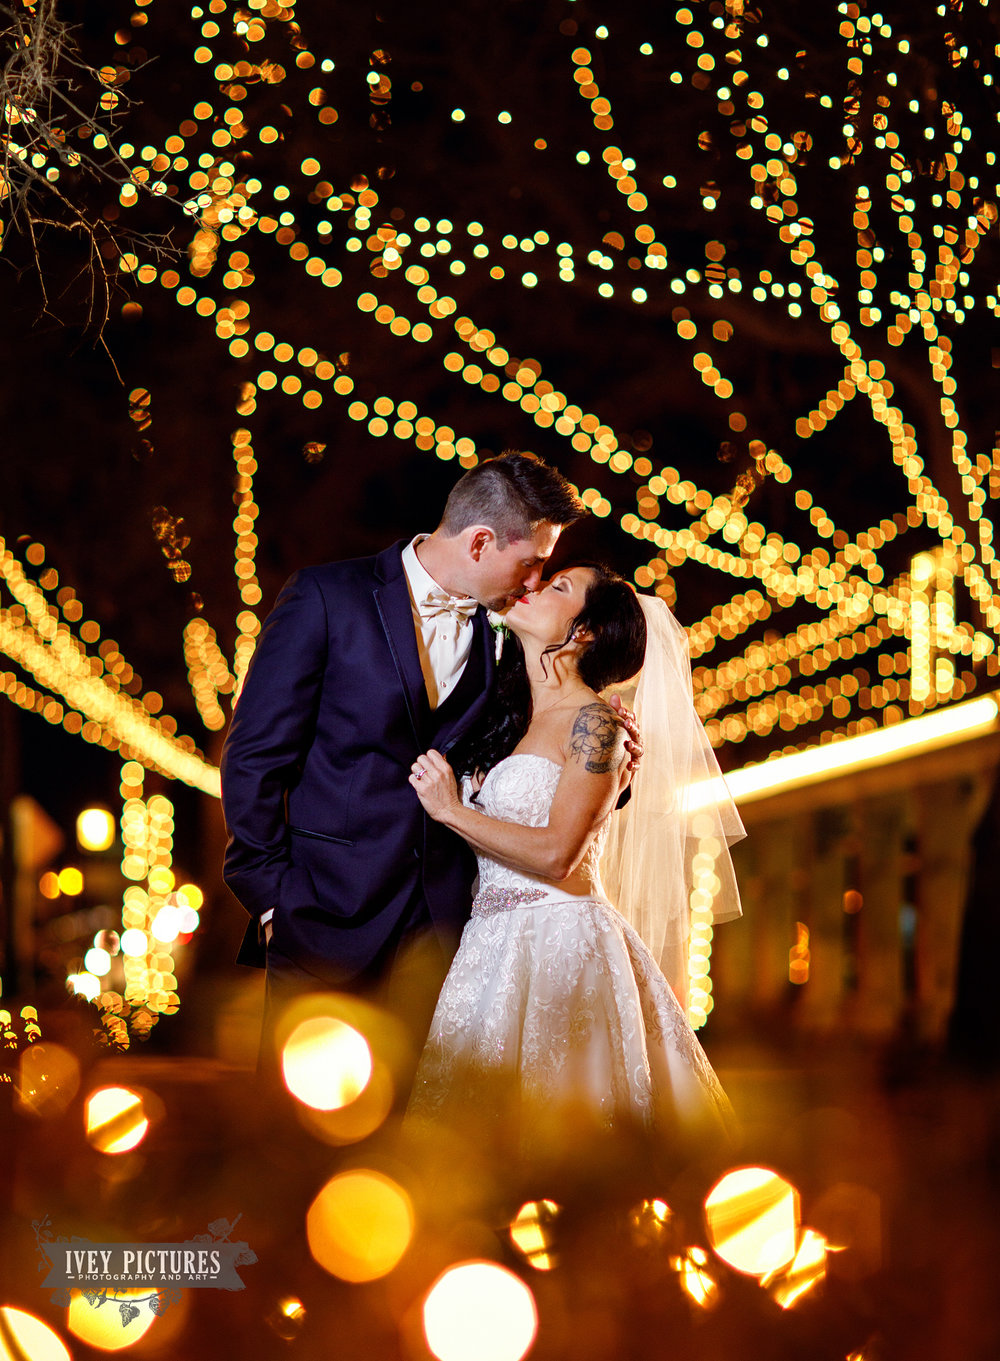 Nights of Lights wedding photos